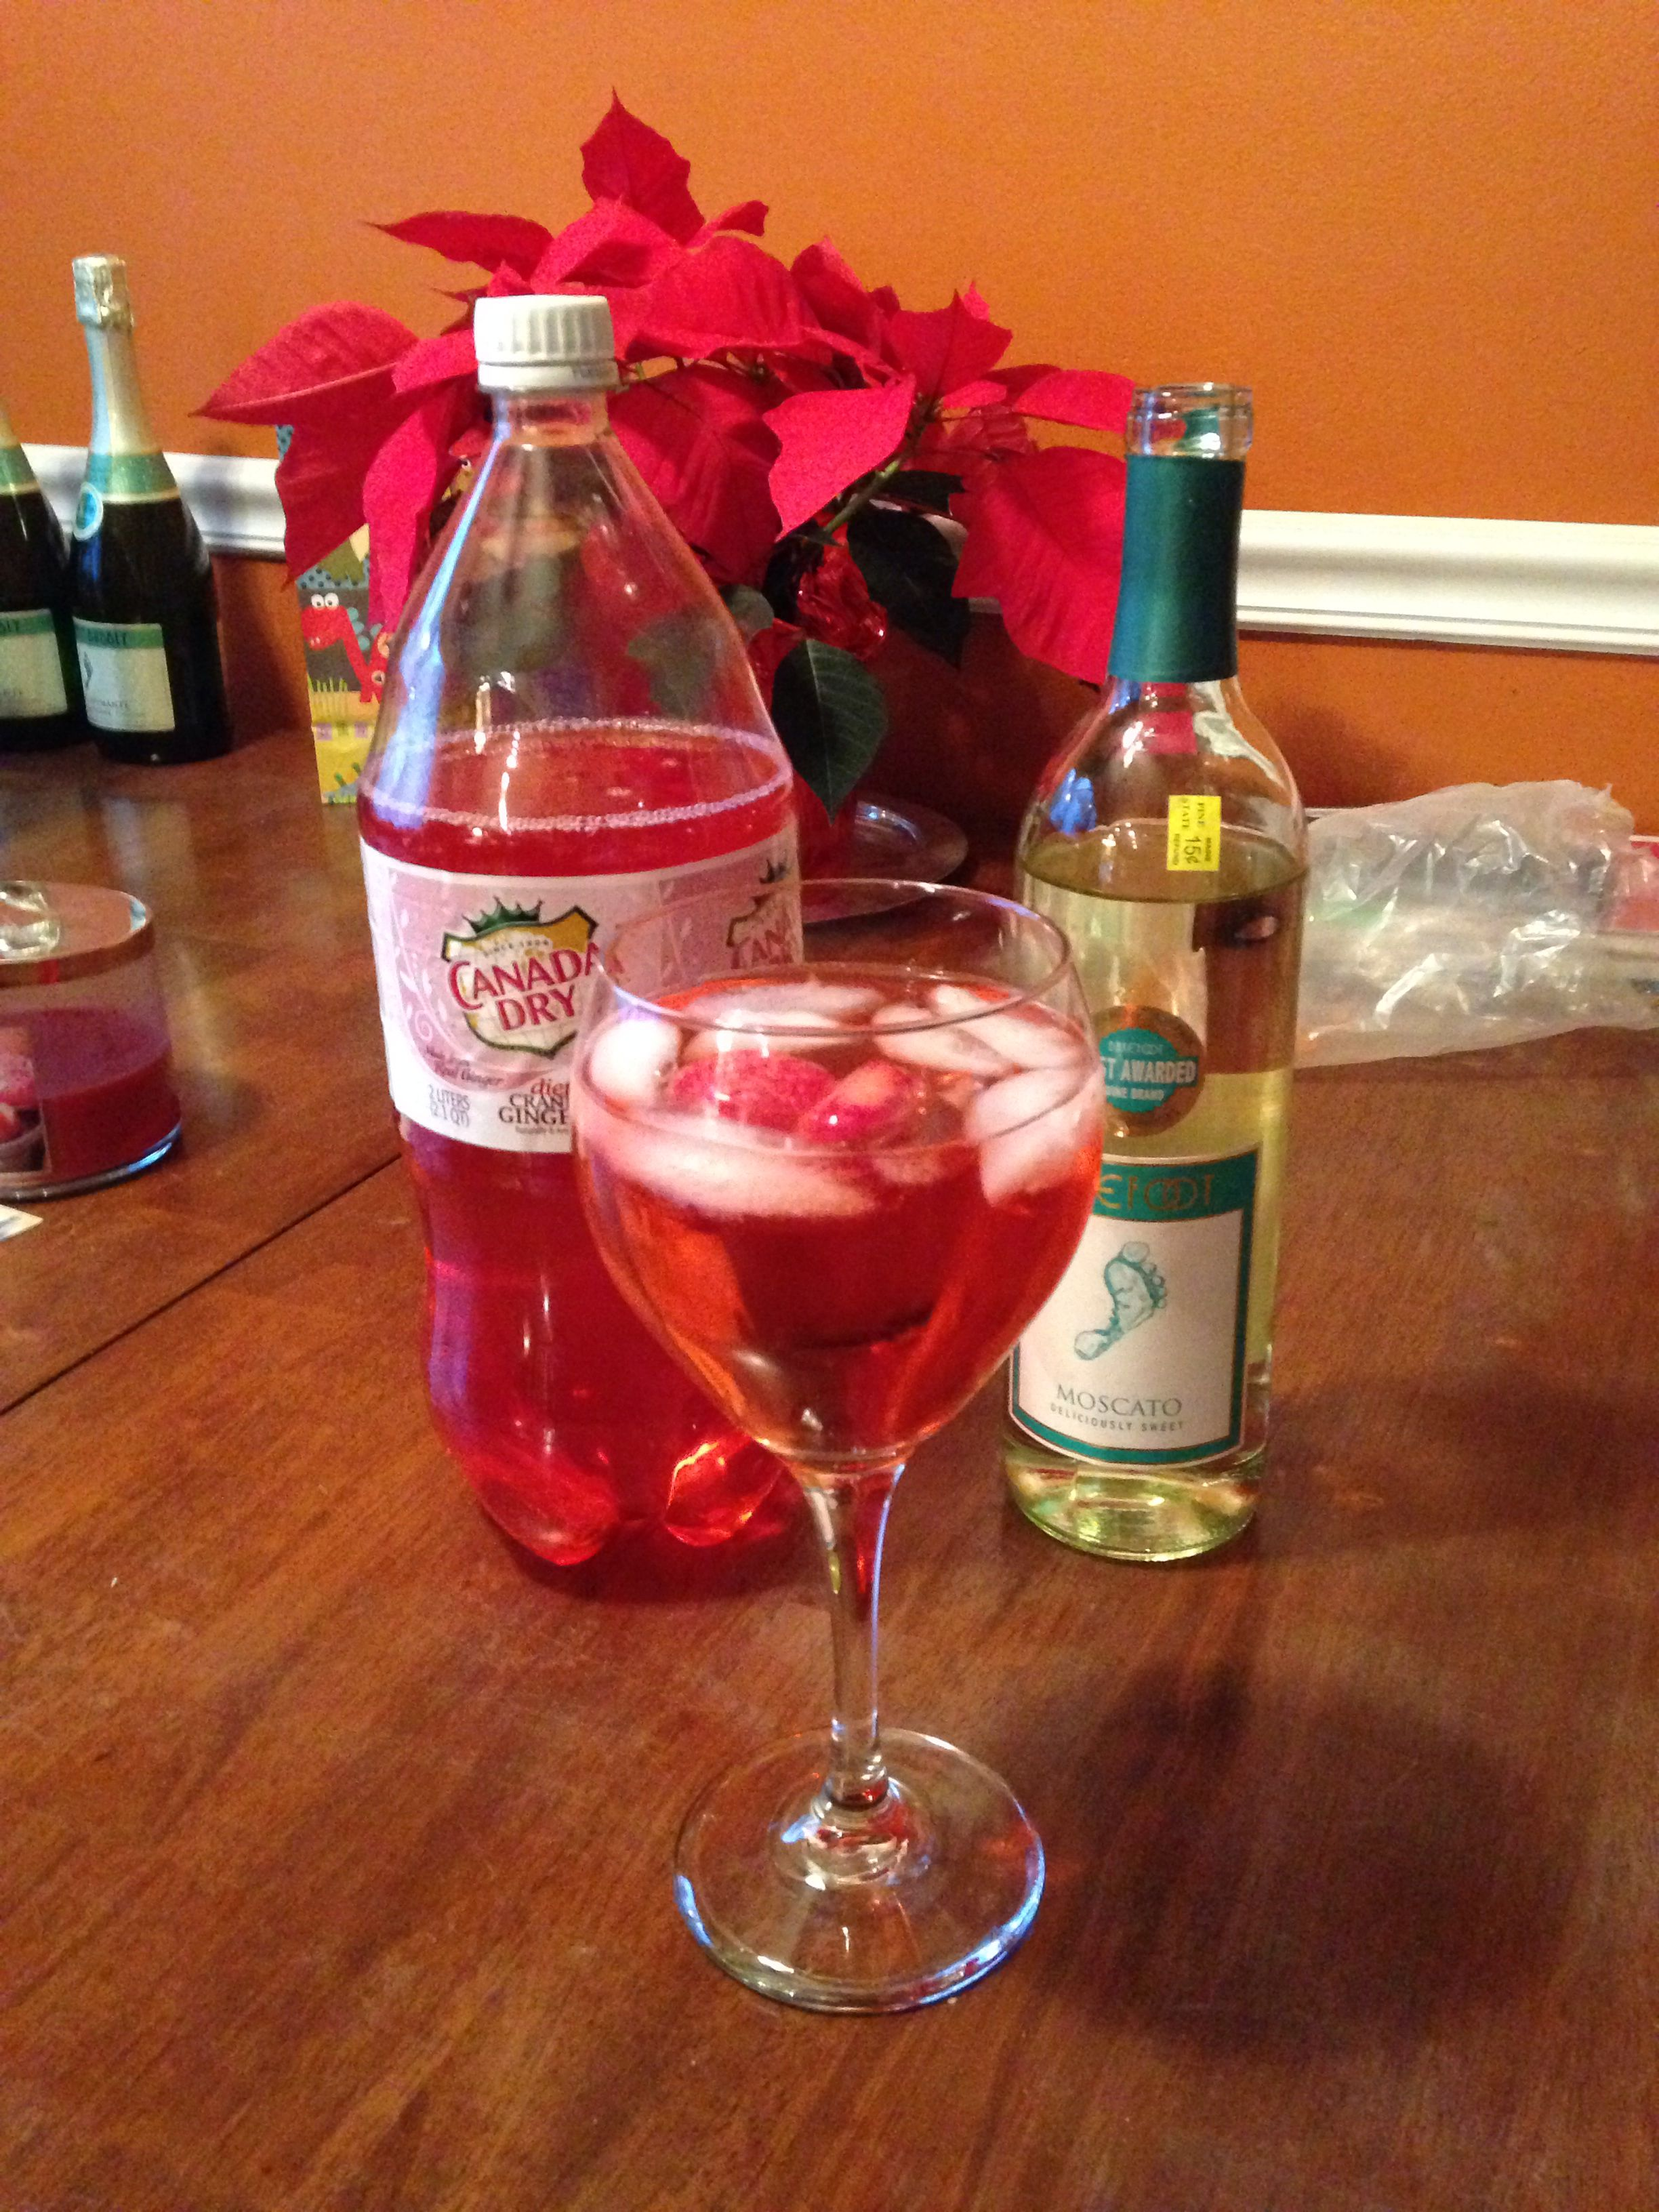 Pin By Katrina Morgan On Drinky Drinks Holiday Drinks Alcohol Holiday Drinks Alcohol Christmas Cranberry Ginger Ale